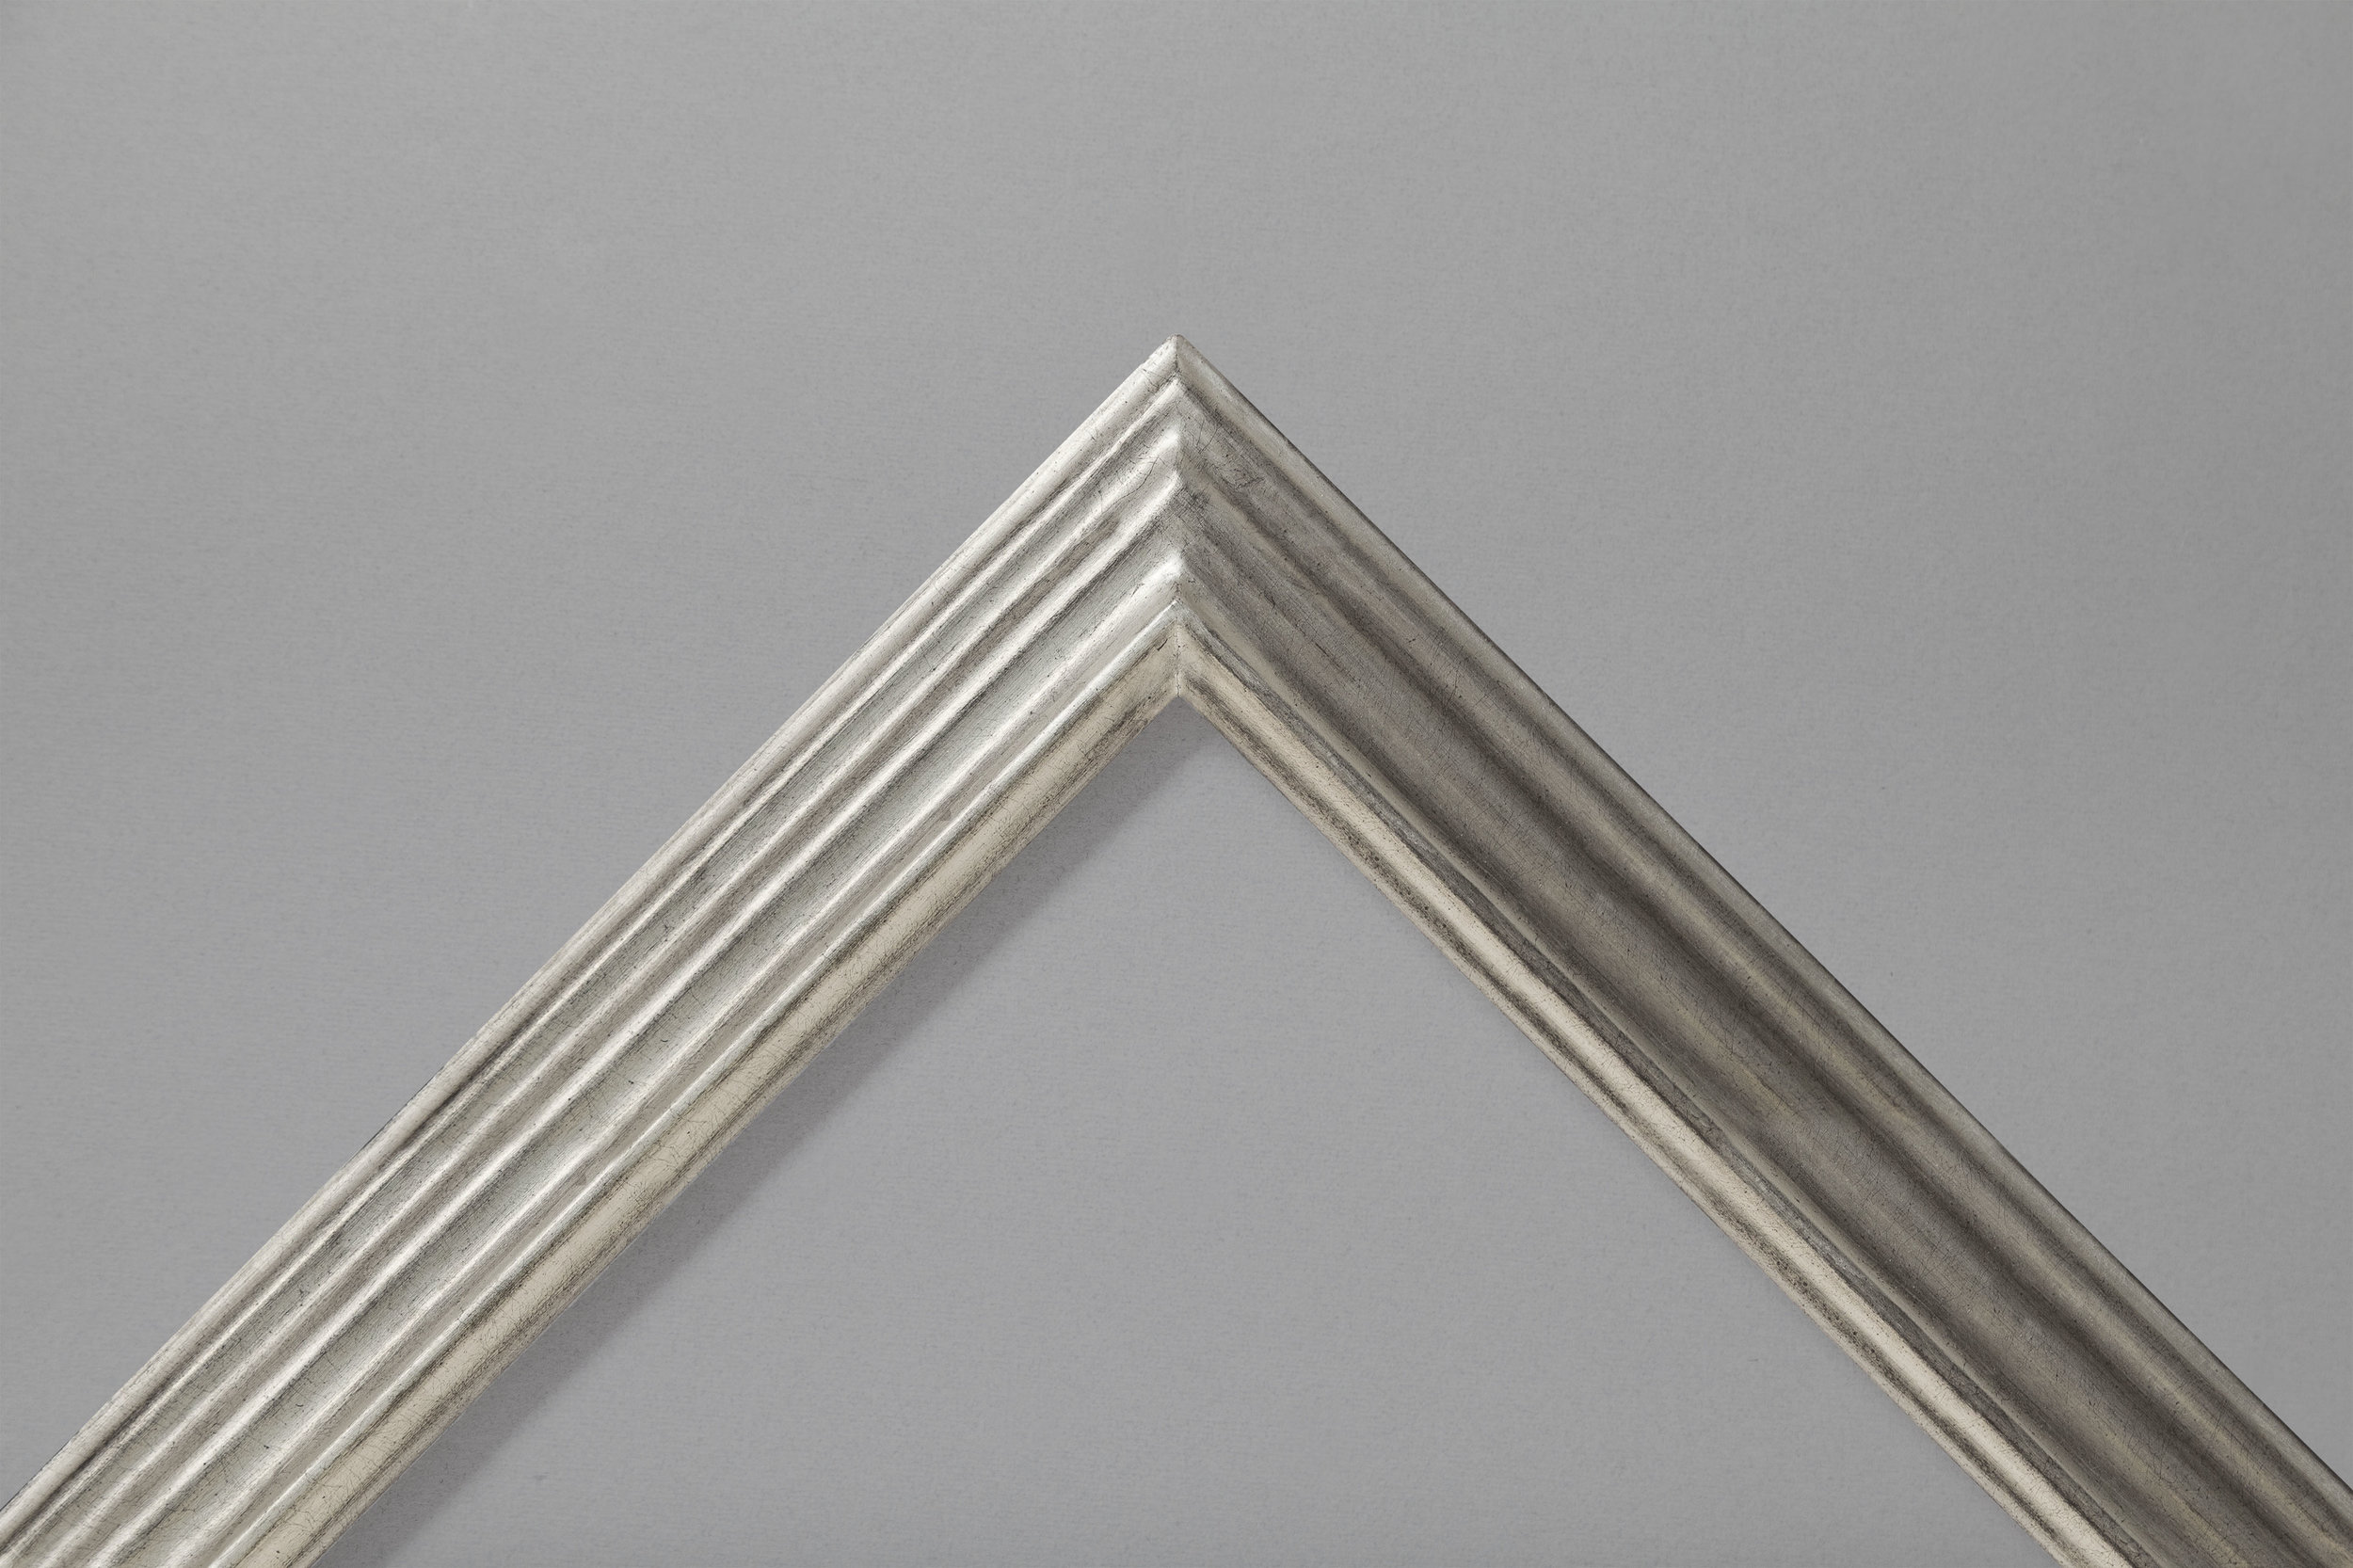 Profiles designed & milled to customer requirements